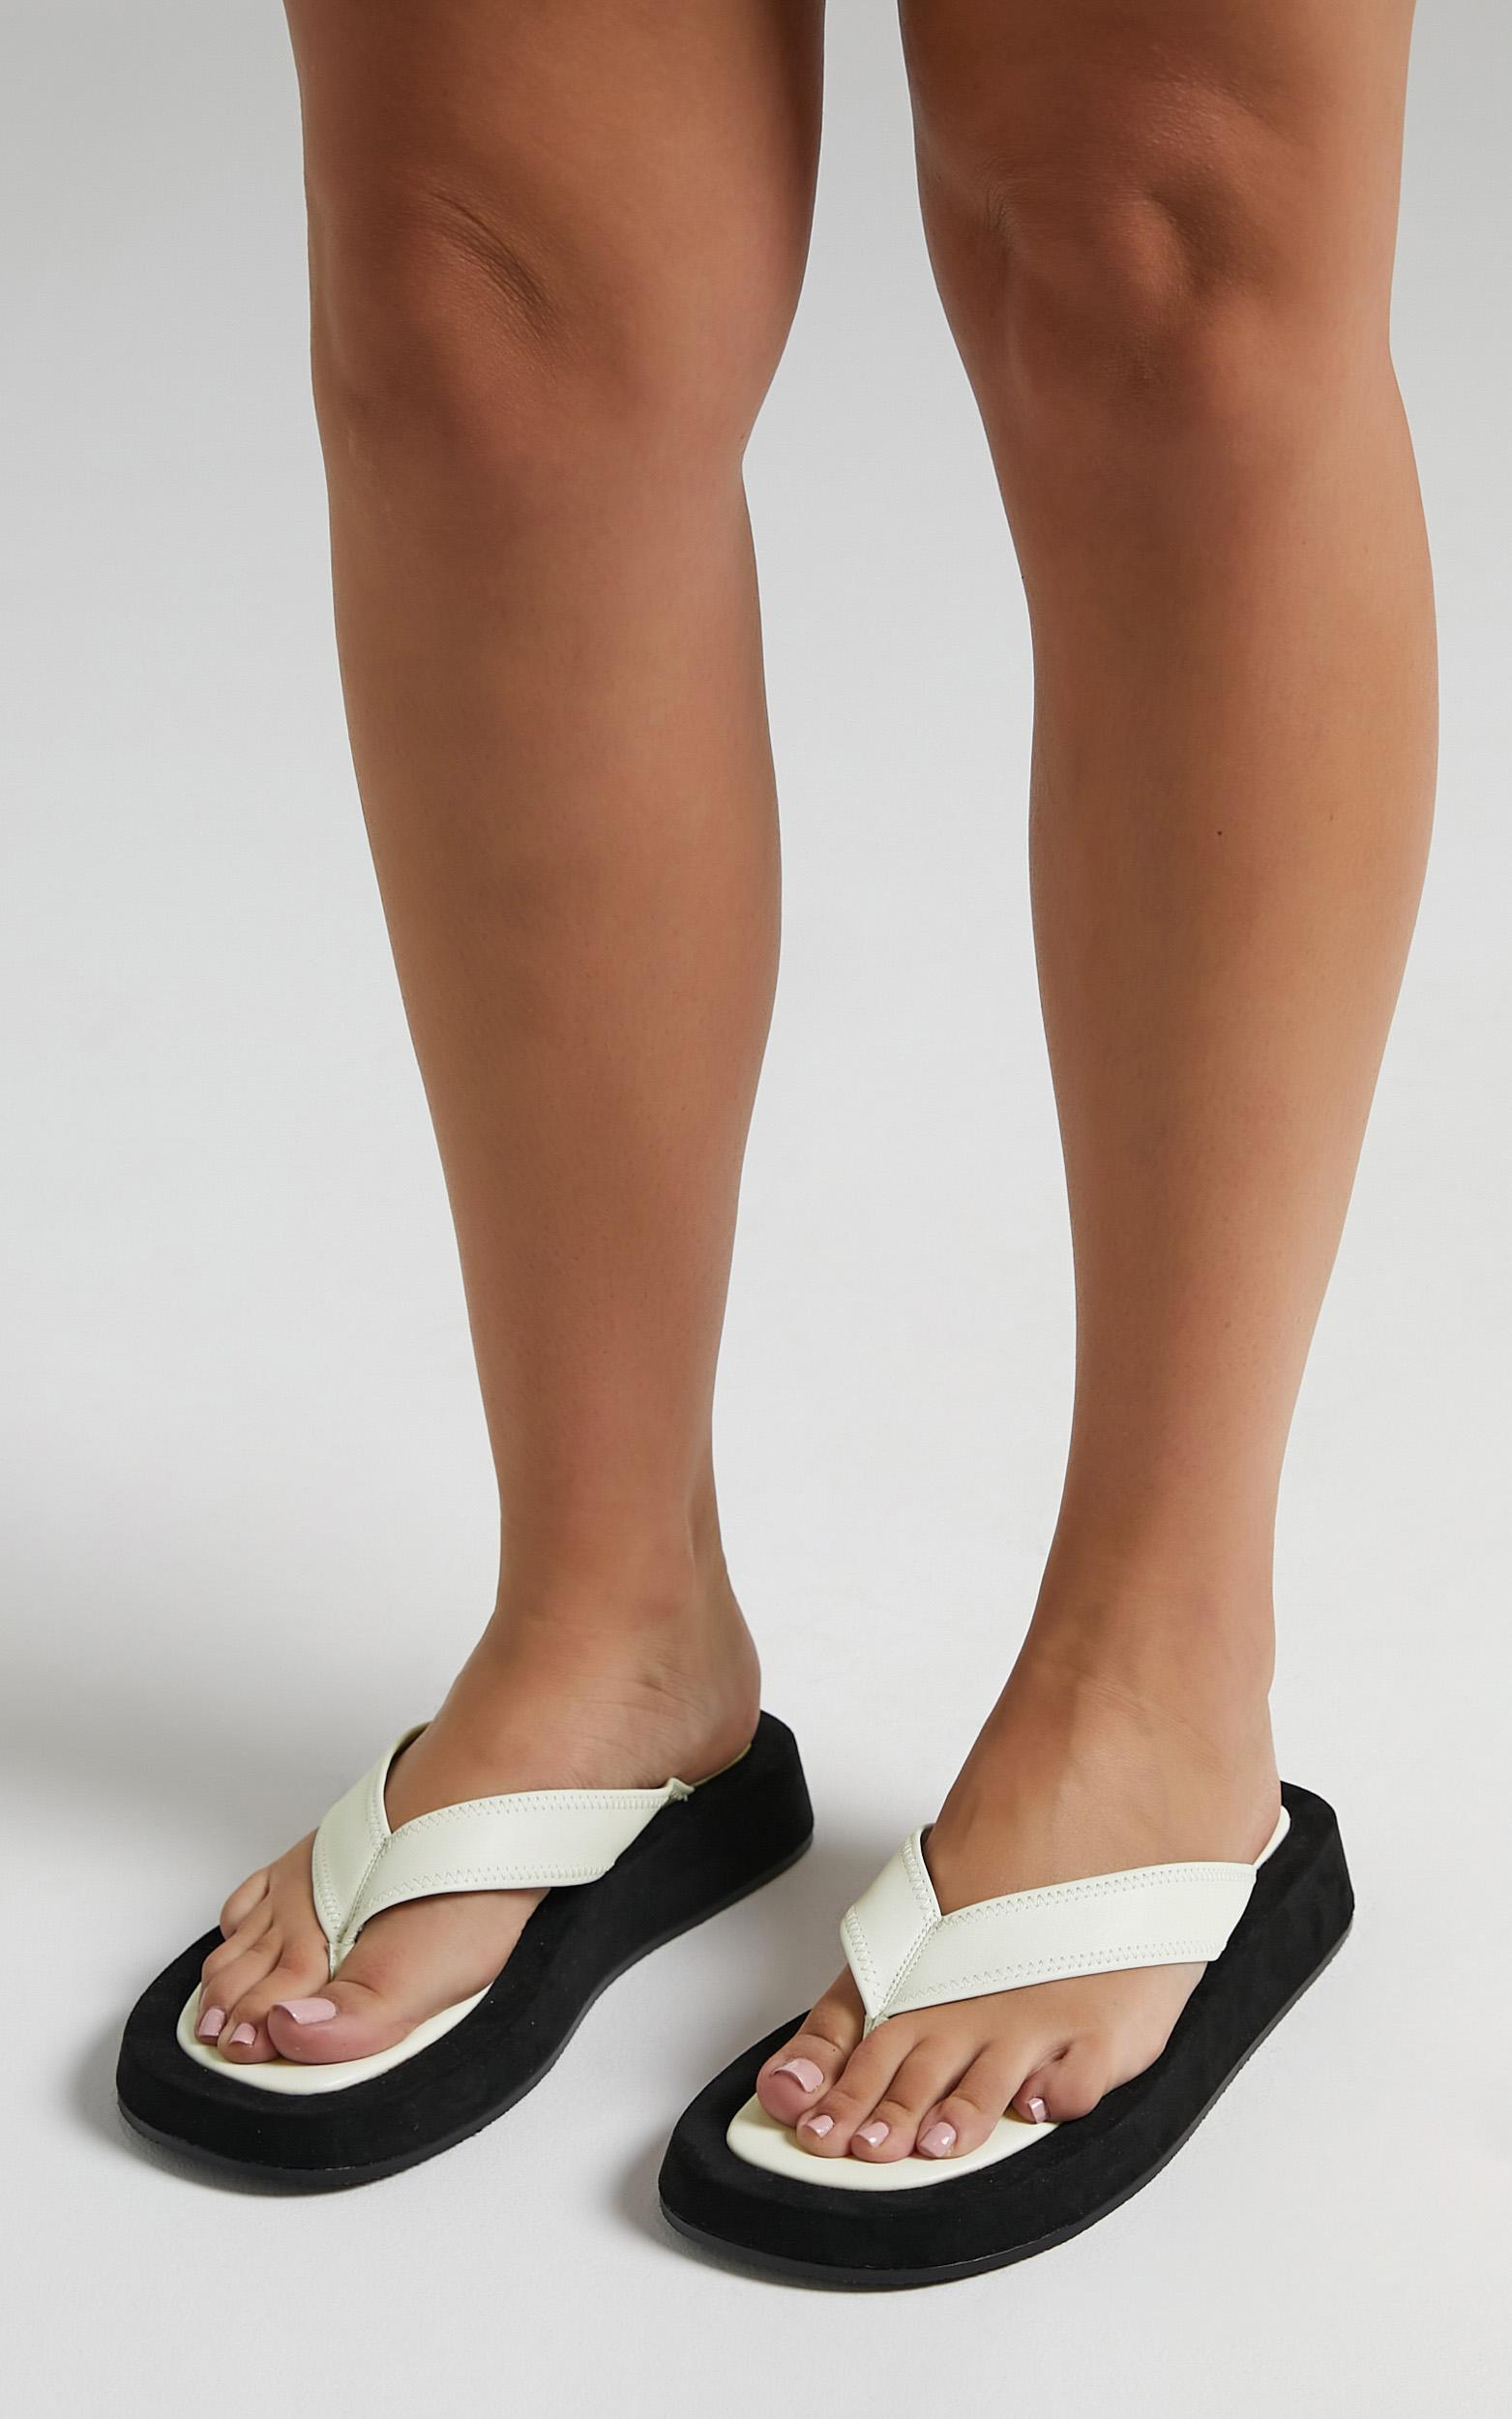 Alias Mae - Poppy Sandals in Ivory Leather - 5.5, White, hi-res image number null